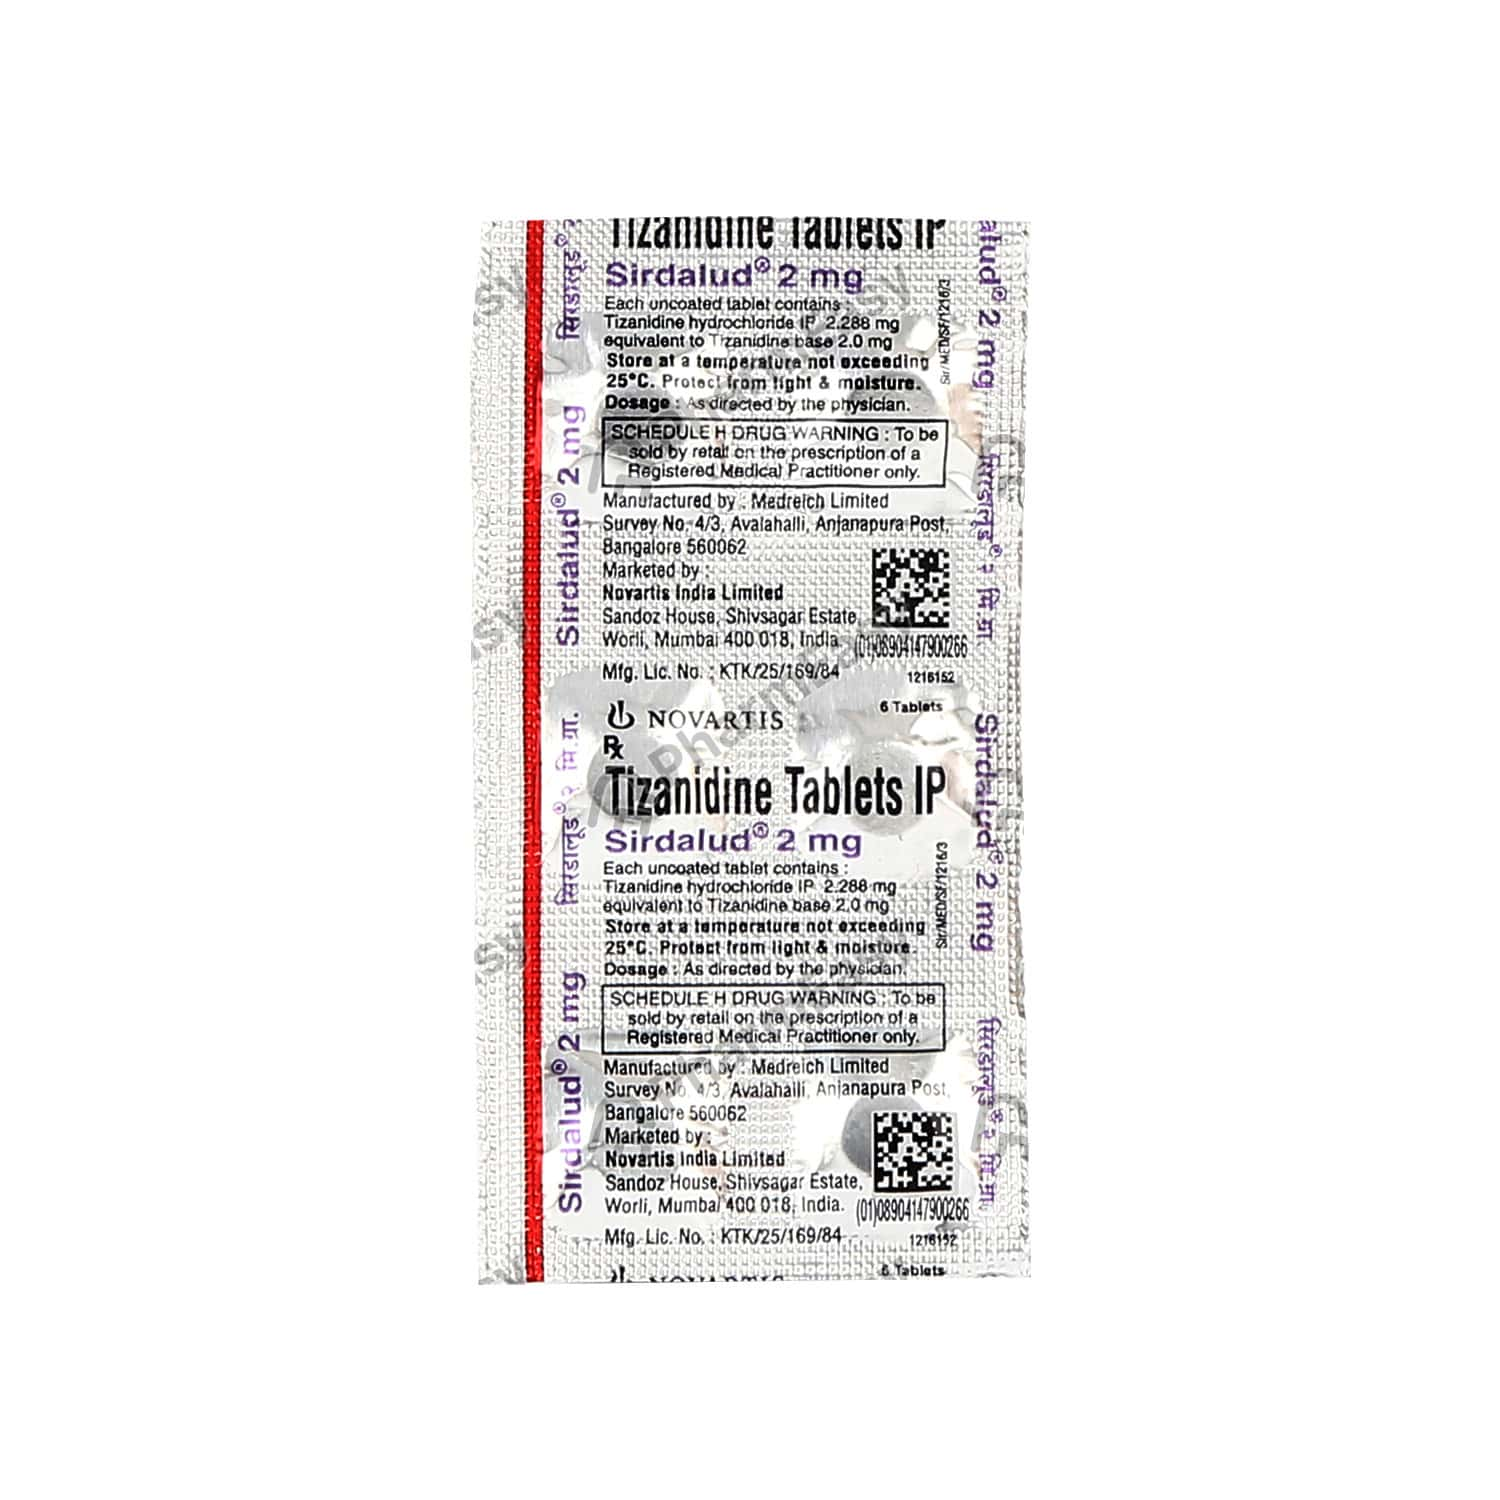 Sirdalud 2mg Tablet